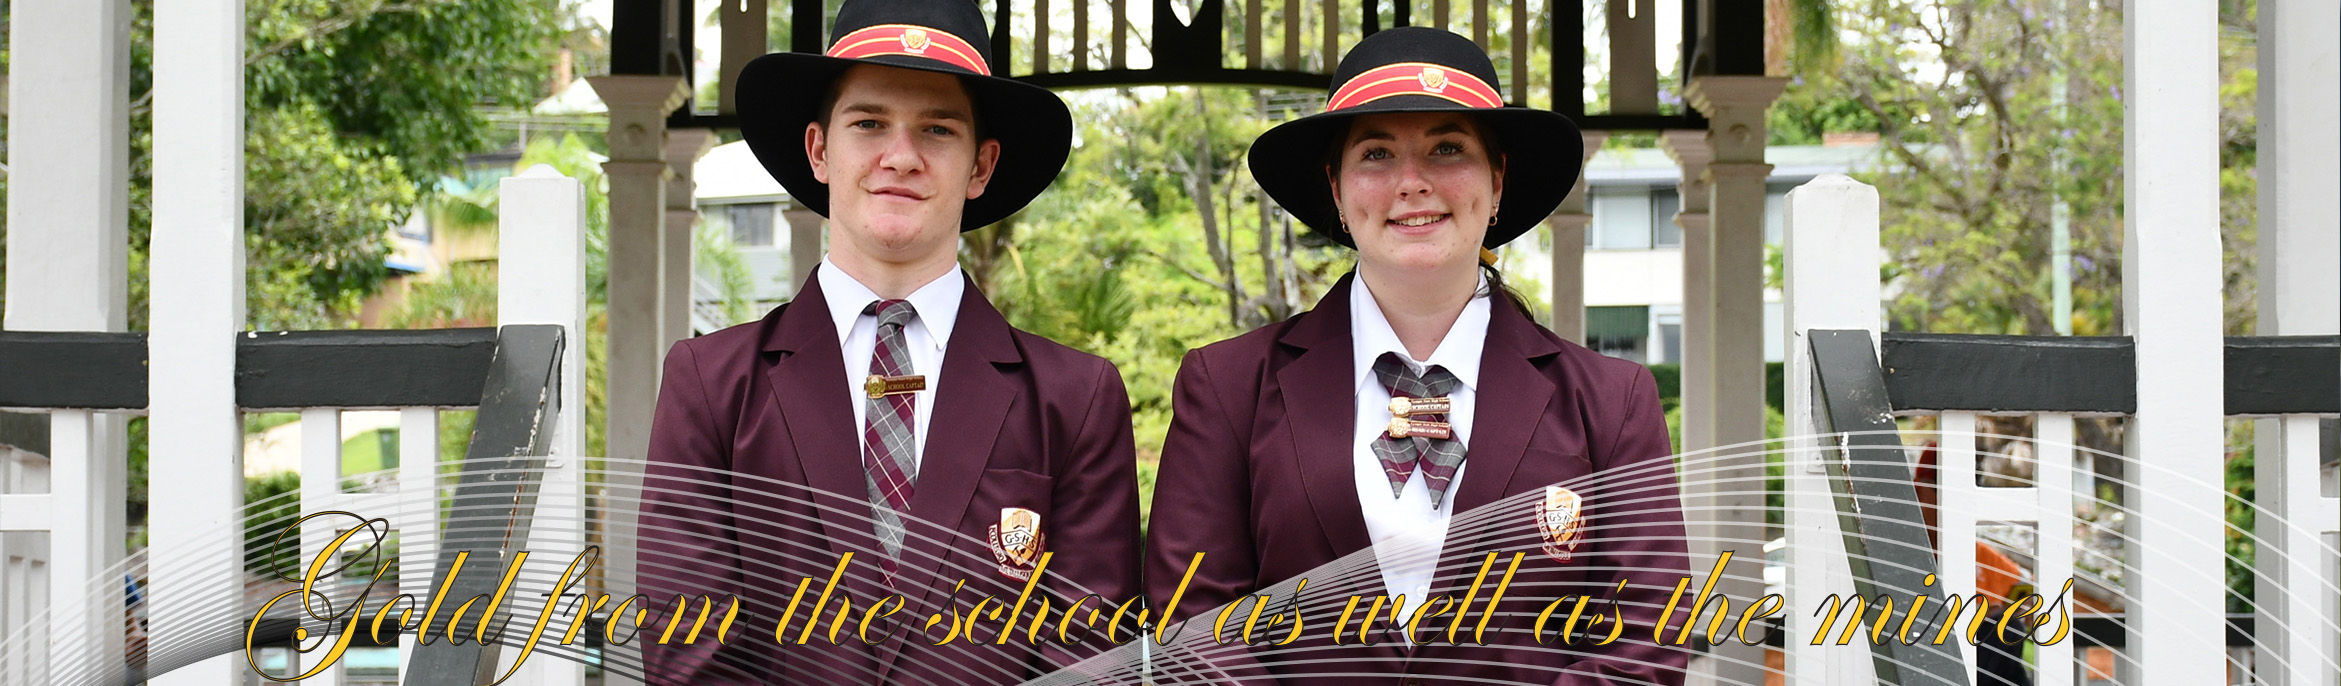 Gympie State High School students